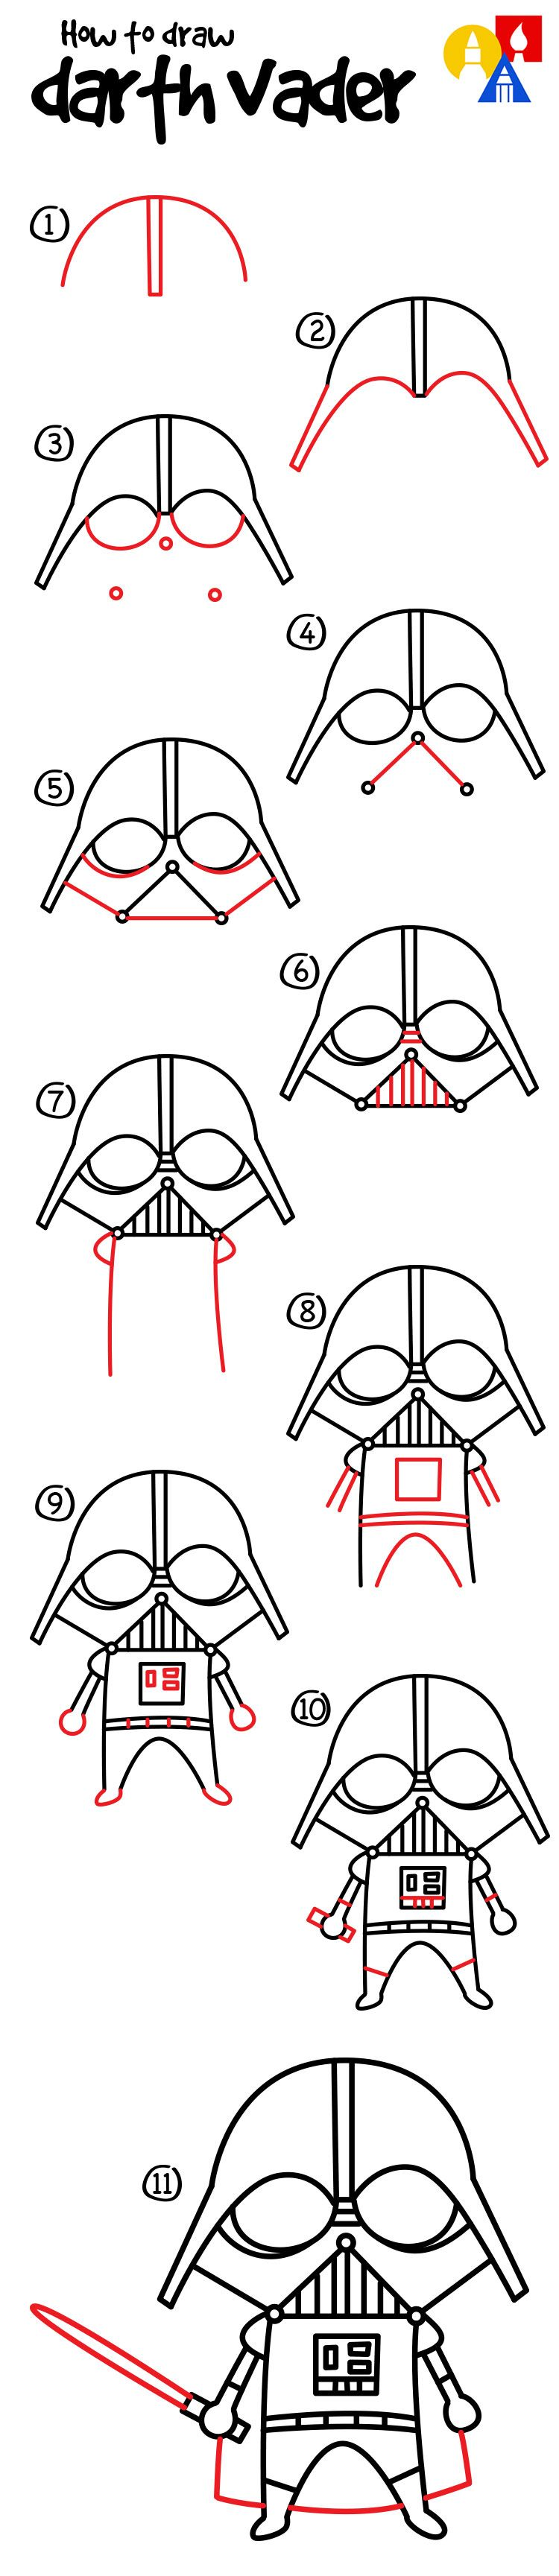 How To Draw A Cartoon Darth Vader - Art For Kids Hub ...